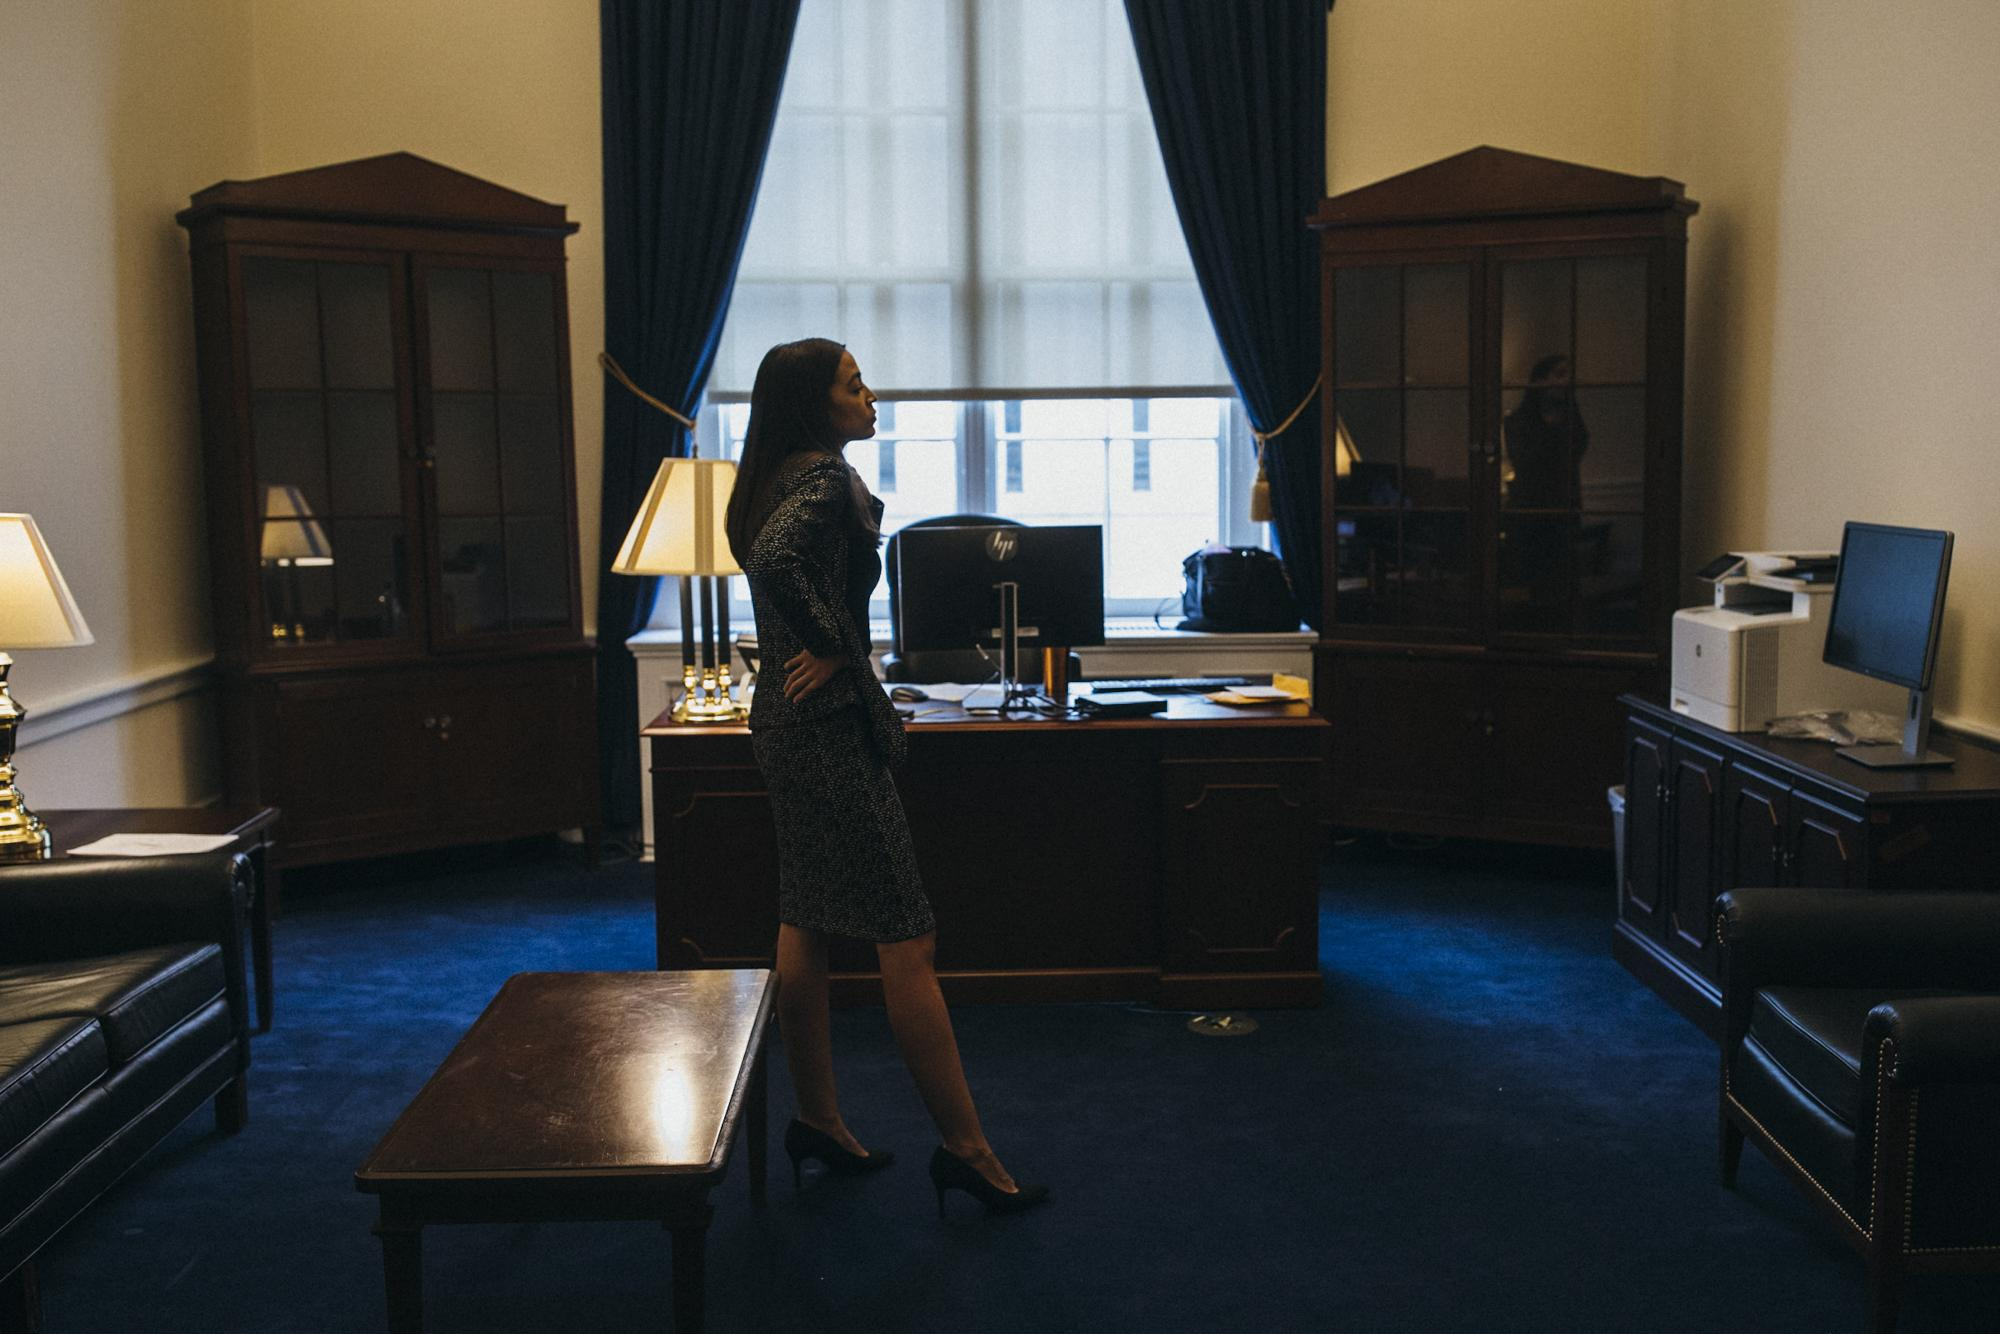 Congresswoman Alexandria Ocasio-Cortez stands in her congressional office for the first time the day before taking the oath of office and officially becoming Representative of Ny-14, in Washington D.C. District of Columbia, United States of America, January 2, 2019.